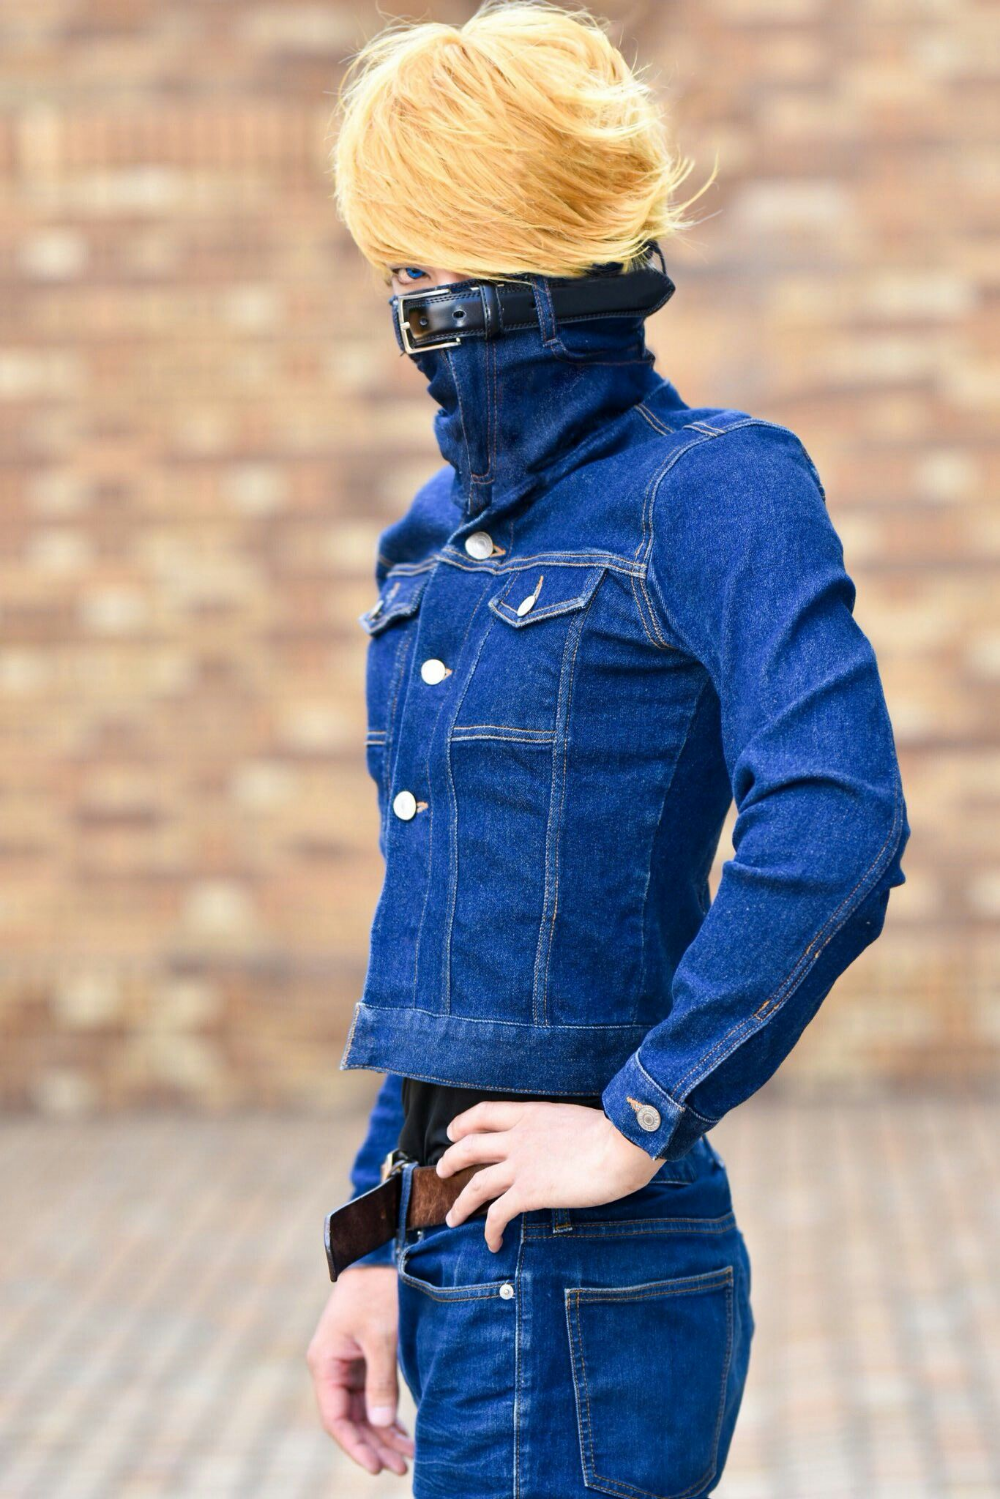 best jeanist cosplay google search cosplay outfits cosplay anime manga cosplay